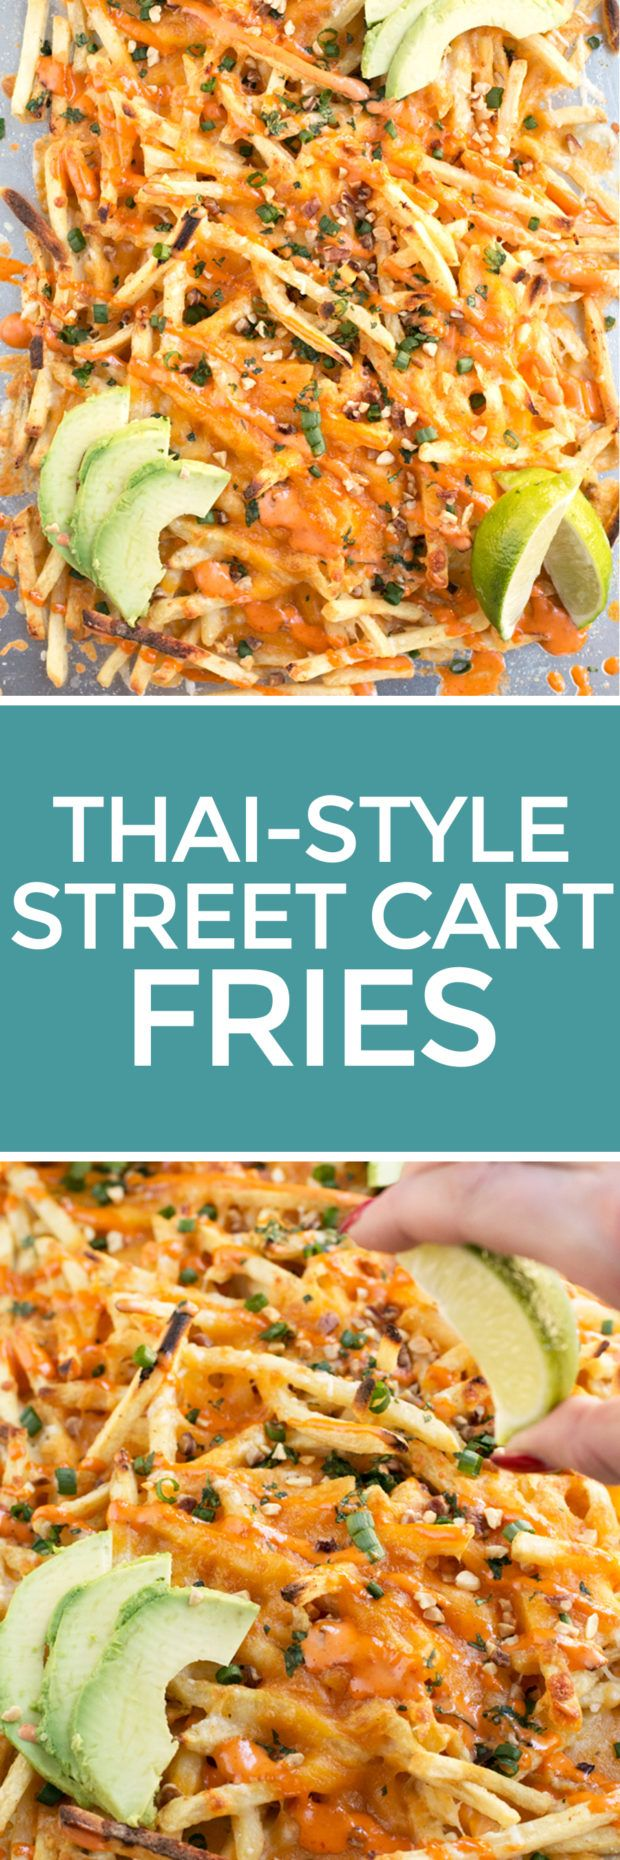 Thai Street Cart Fries – Cake 'n Knife